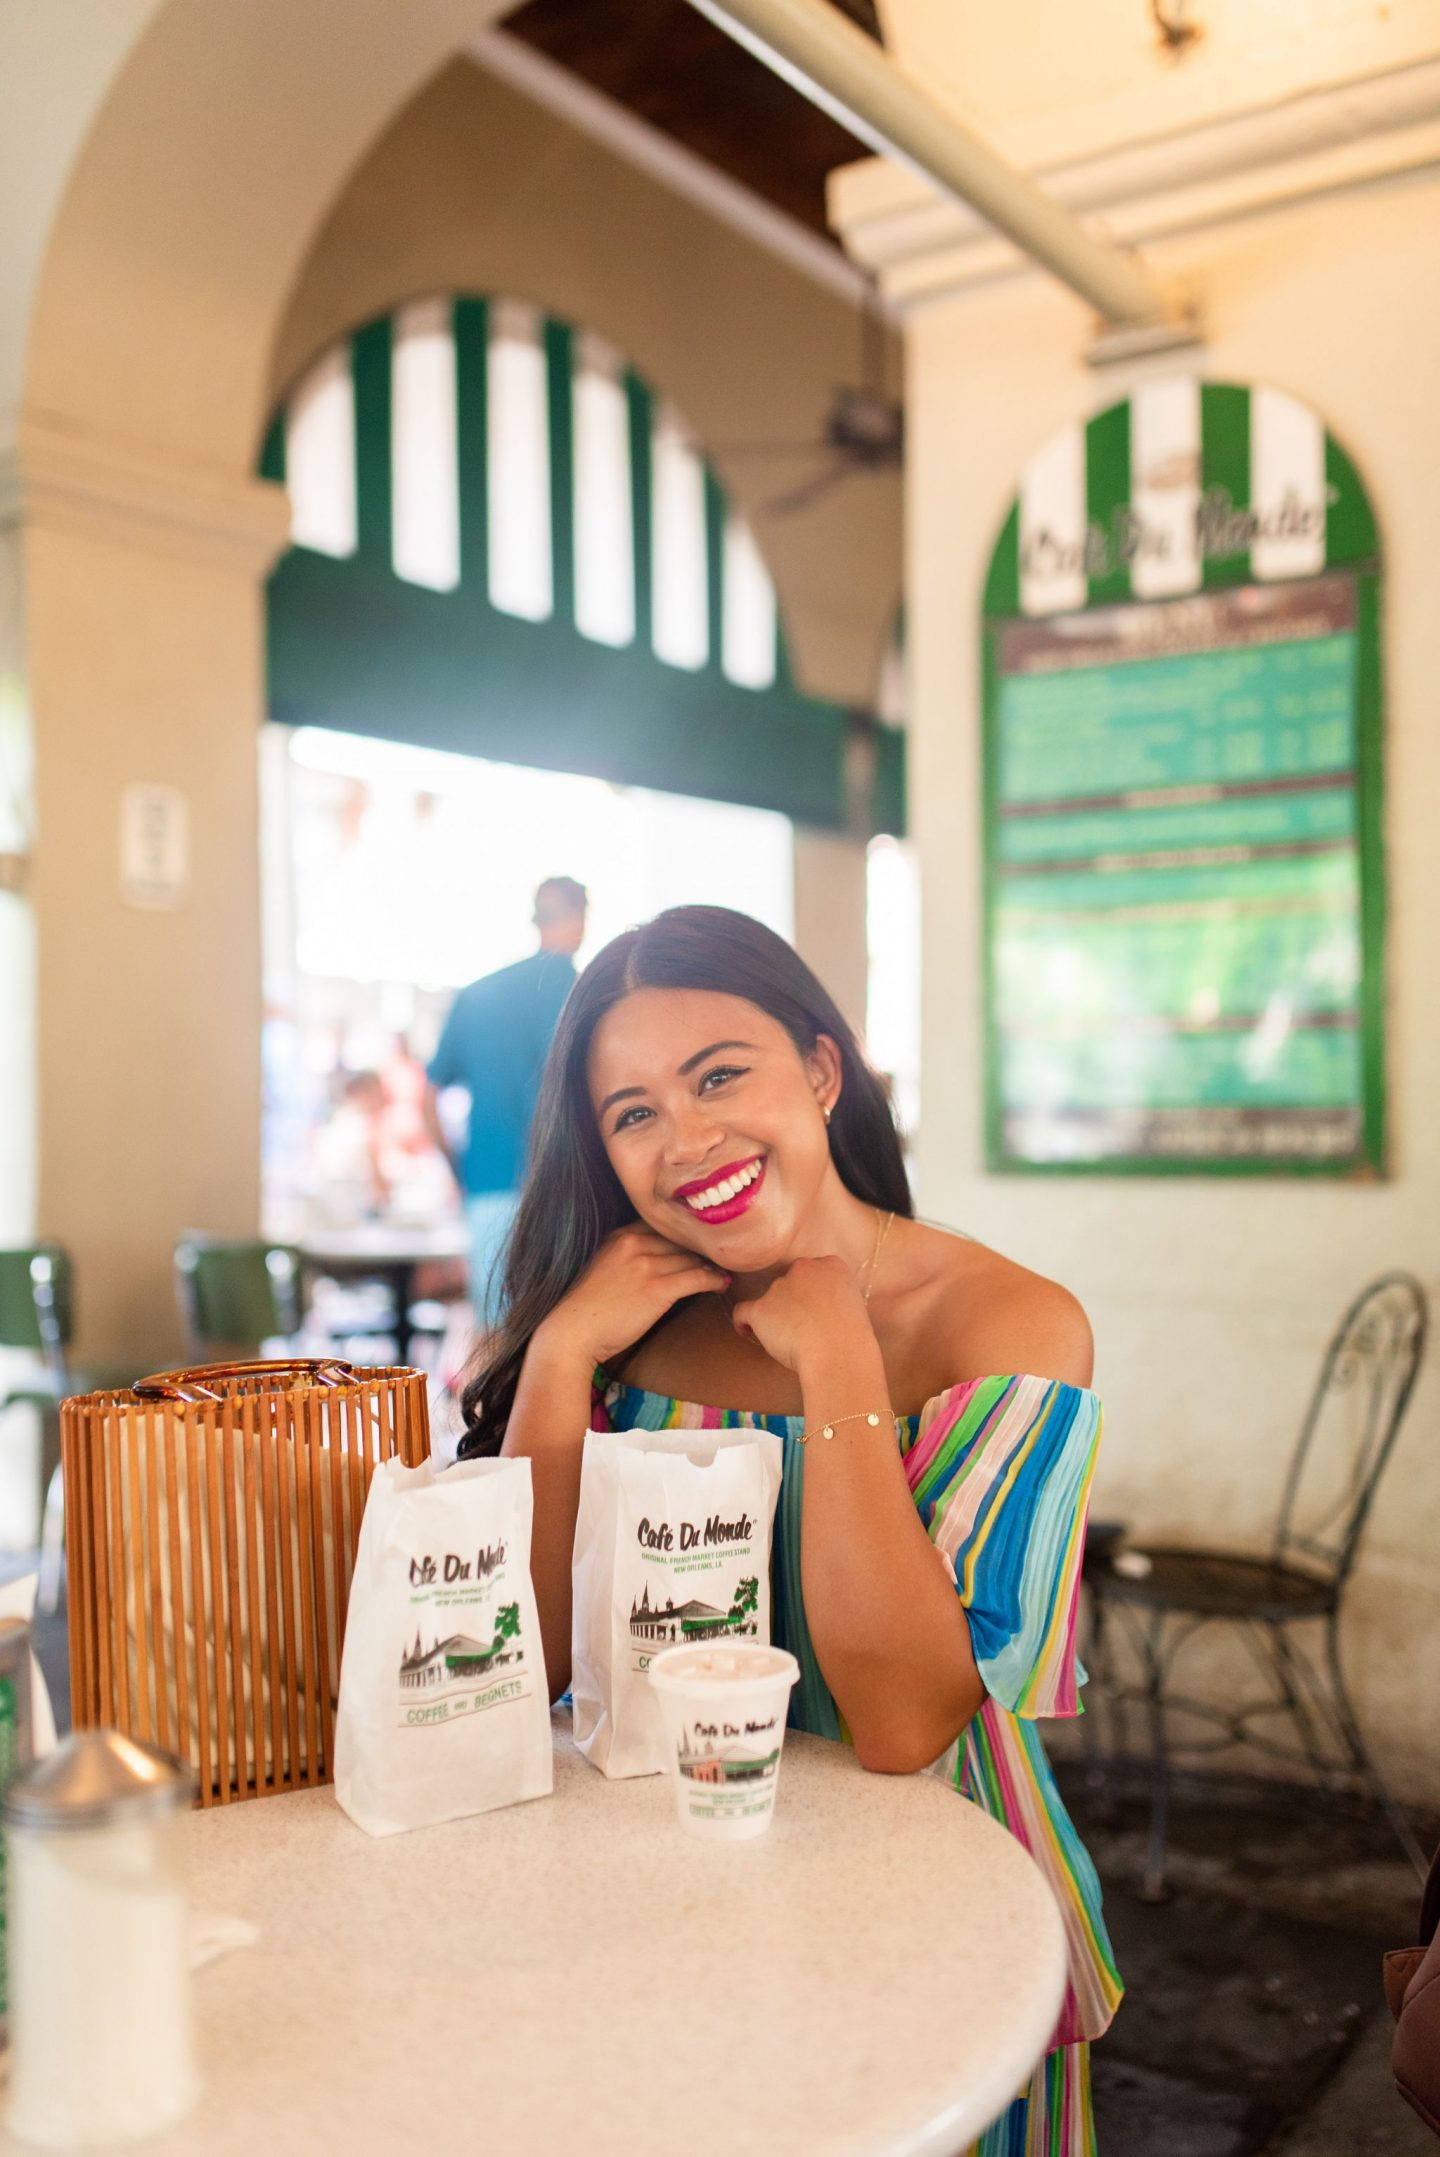 cafe du monde - Top photography spots in the French Quarter – photo locations New Orleans - Free places to take photos in New Orleans – best places to take senior photos in New Orleans – New Orleans photo shoot – French quarter photo shoot – best places to take photos in NOLA – photography spots in NOLA